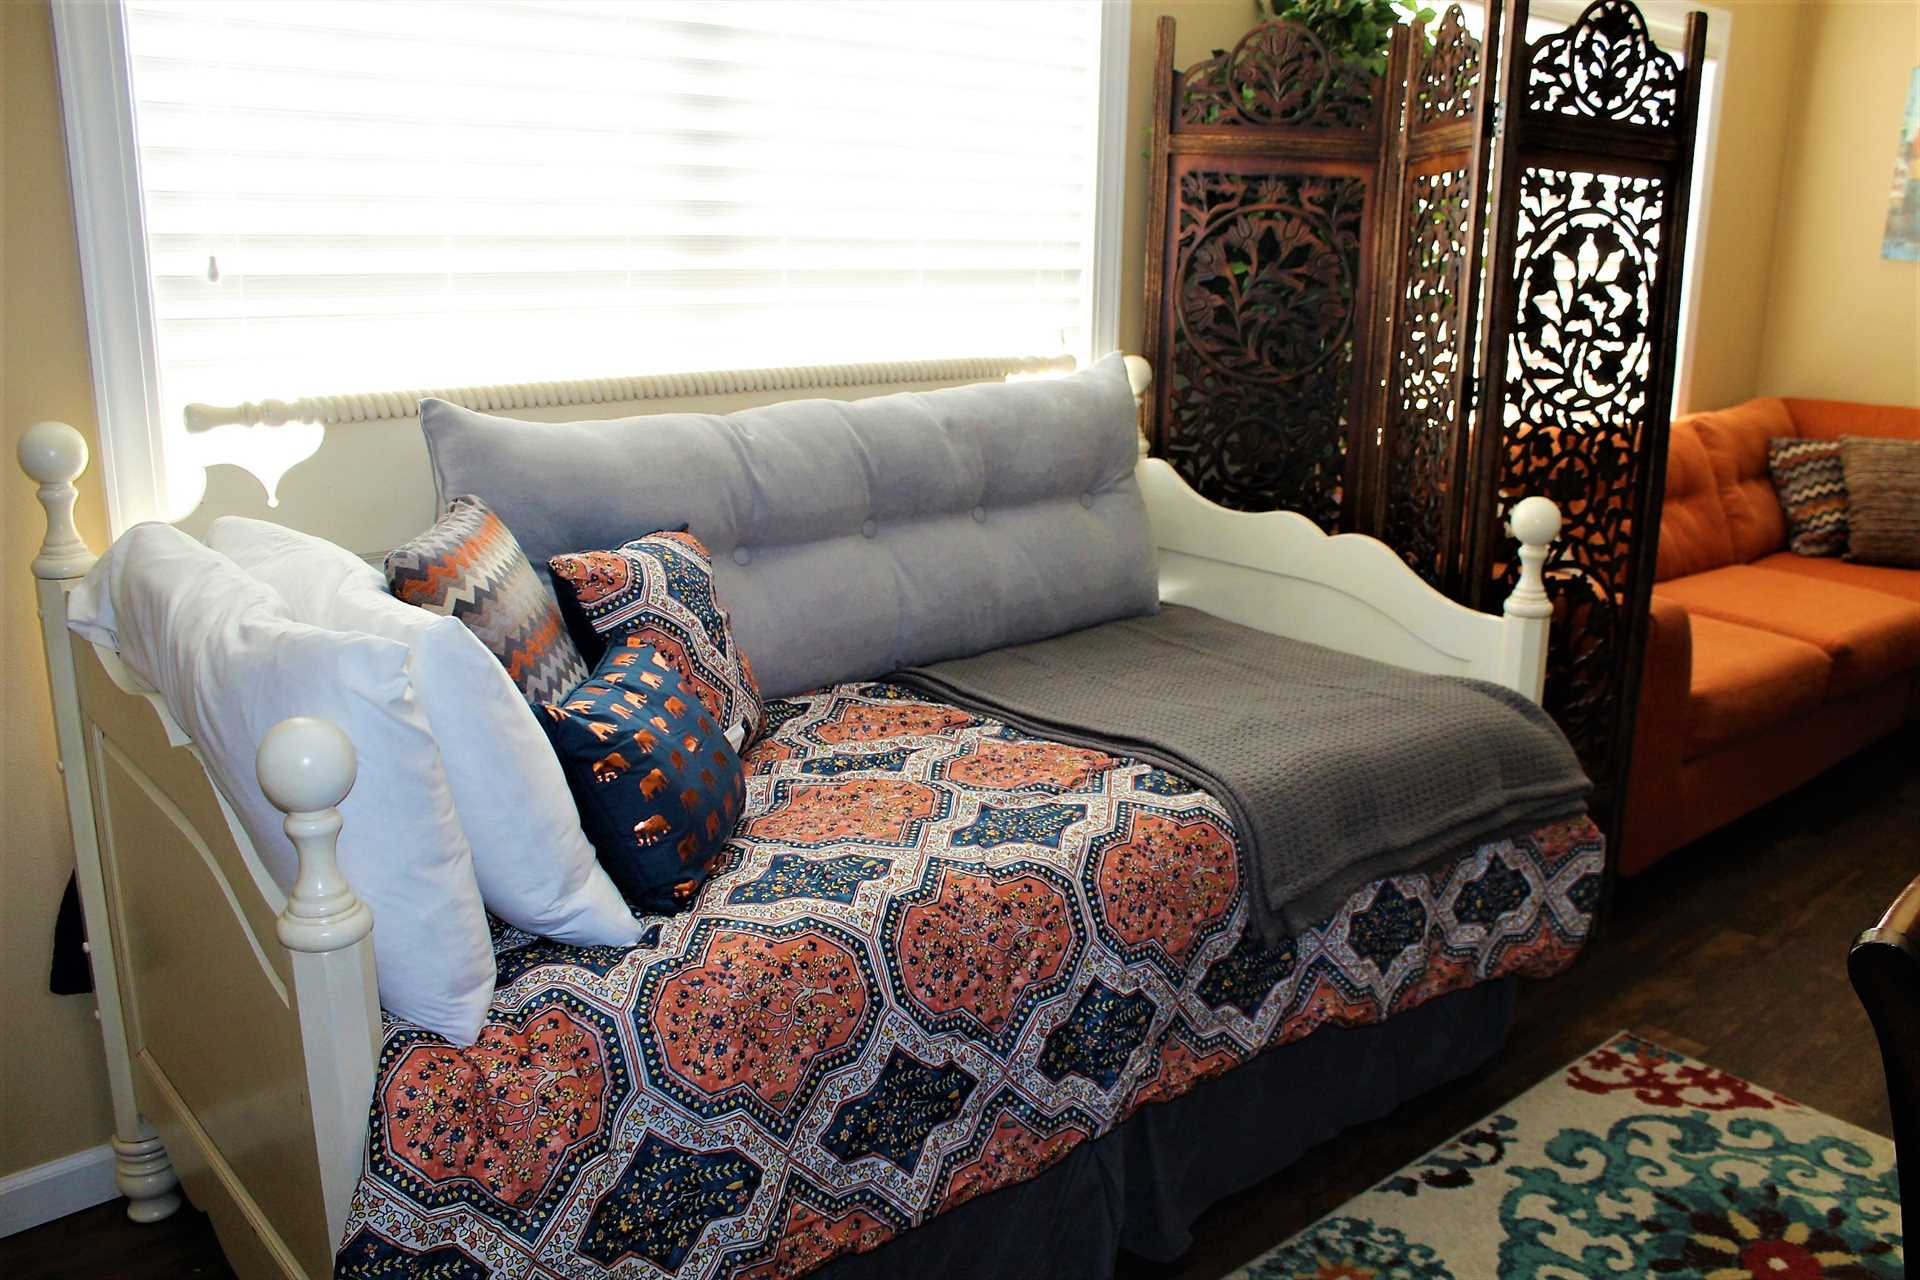 Daybed wi trundle XL twin